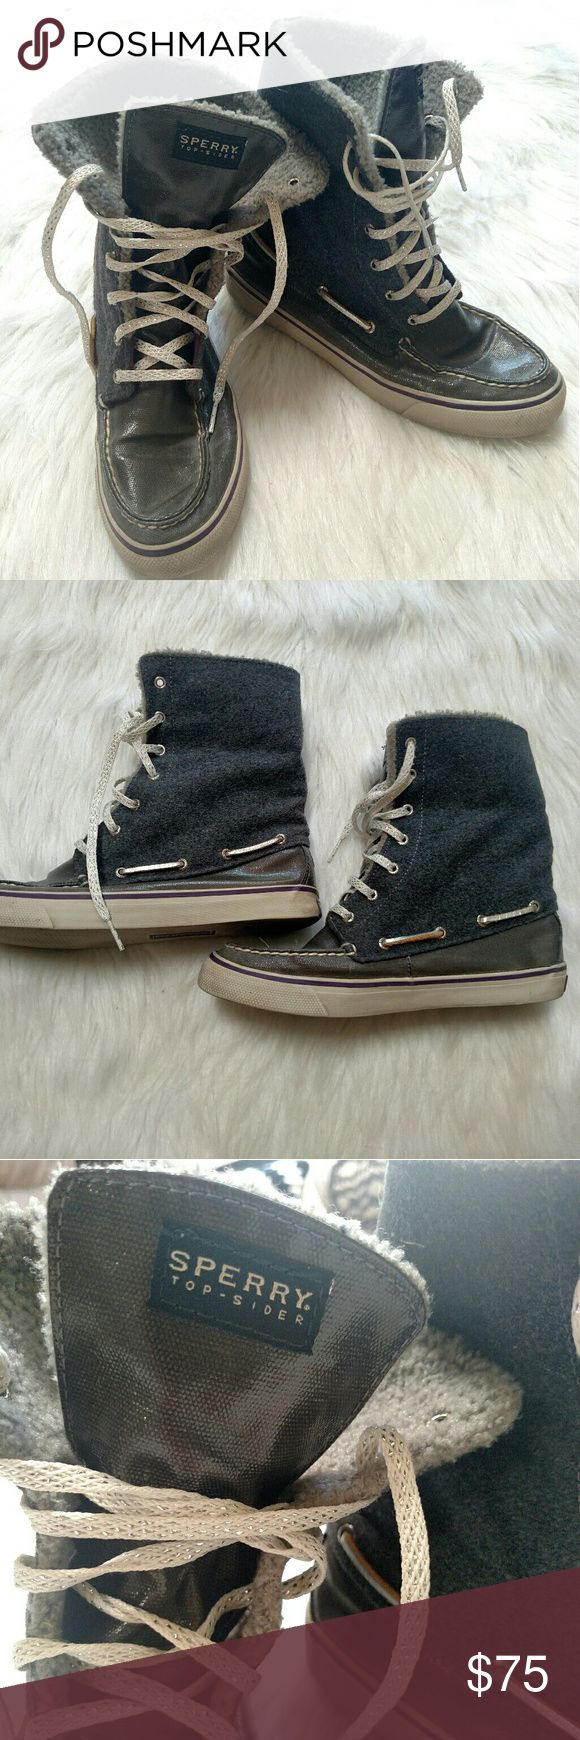 Sperry topsider women's 8M shoes hightops Used but great condition Sperry high top shoes.  Faux fur tops, shiny rubber and glittery shoe laces. Sperry Top-Sider Shoes Sneakers